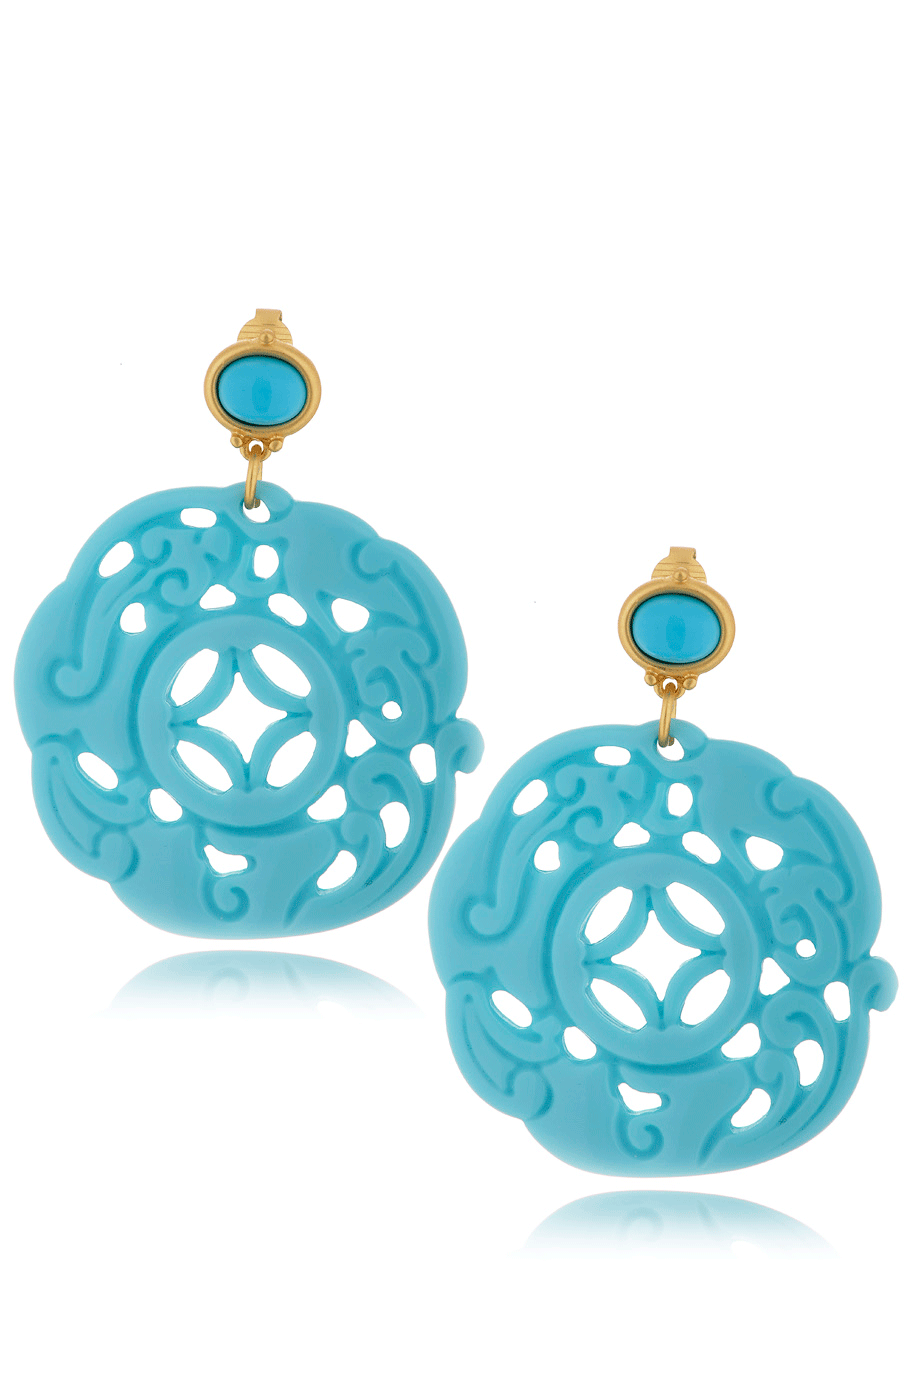 Kenneth Jay Lane Carved Turquoise Earring Turquoise t2iB4